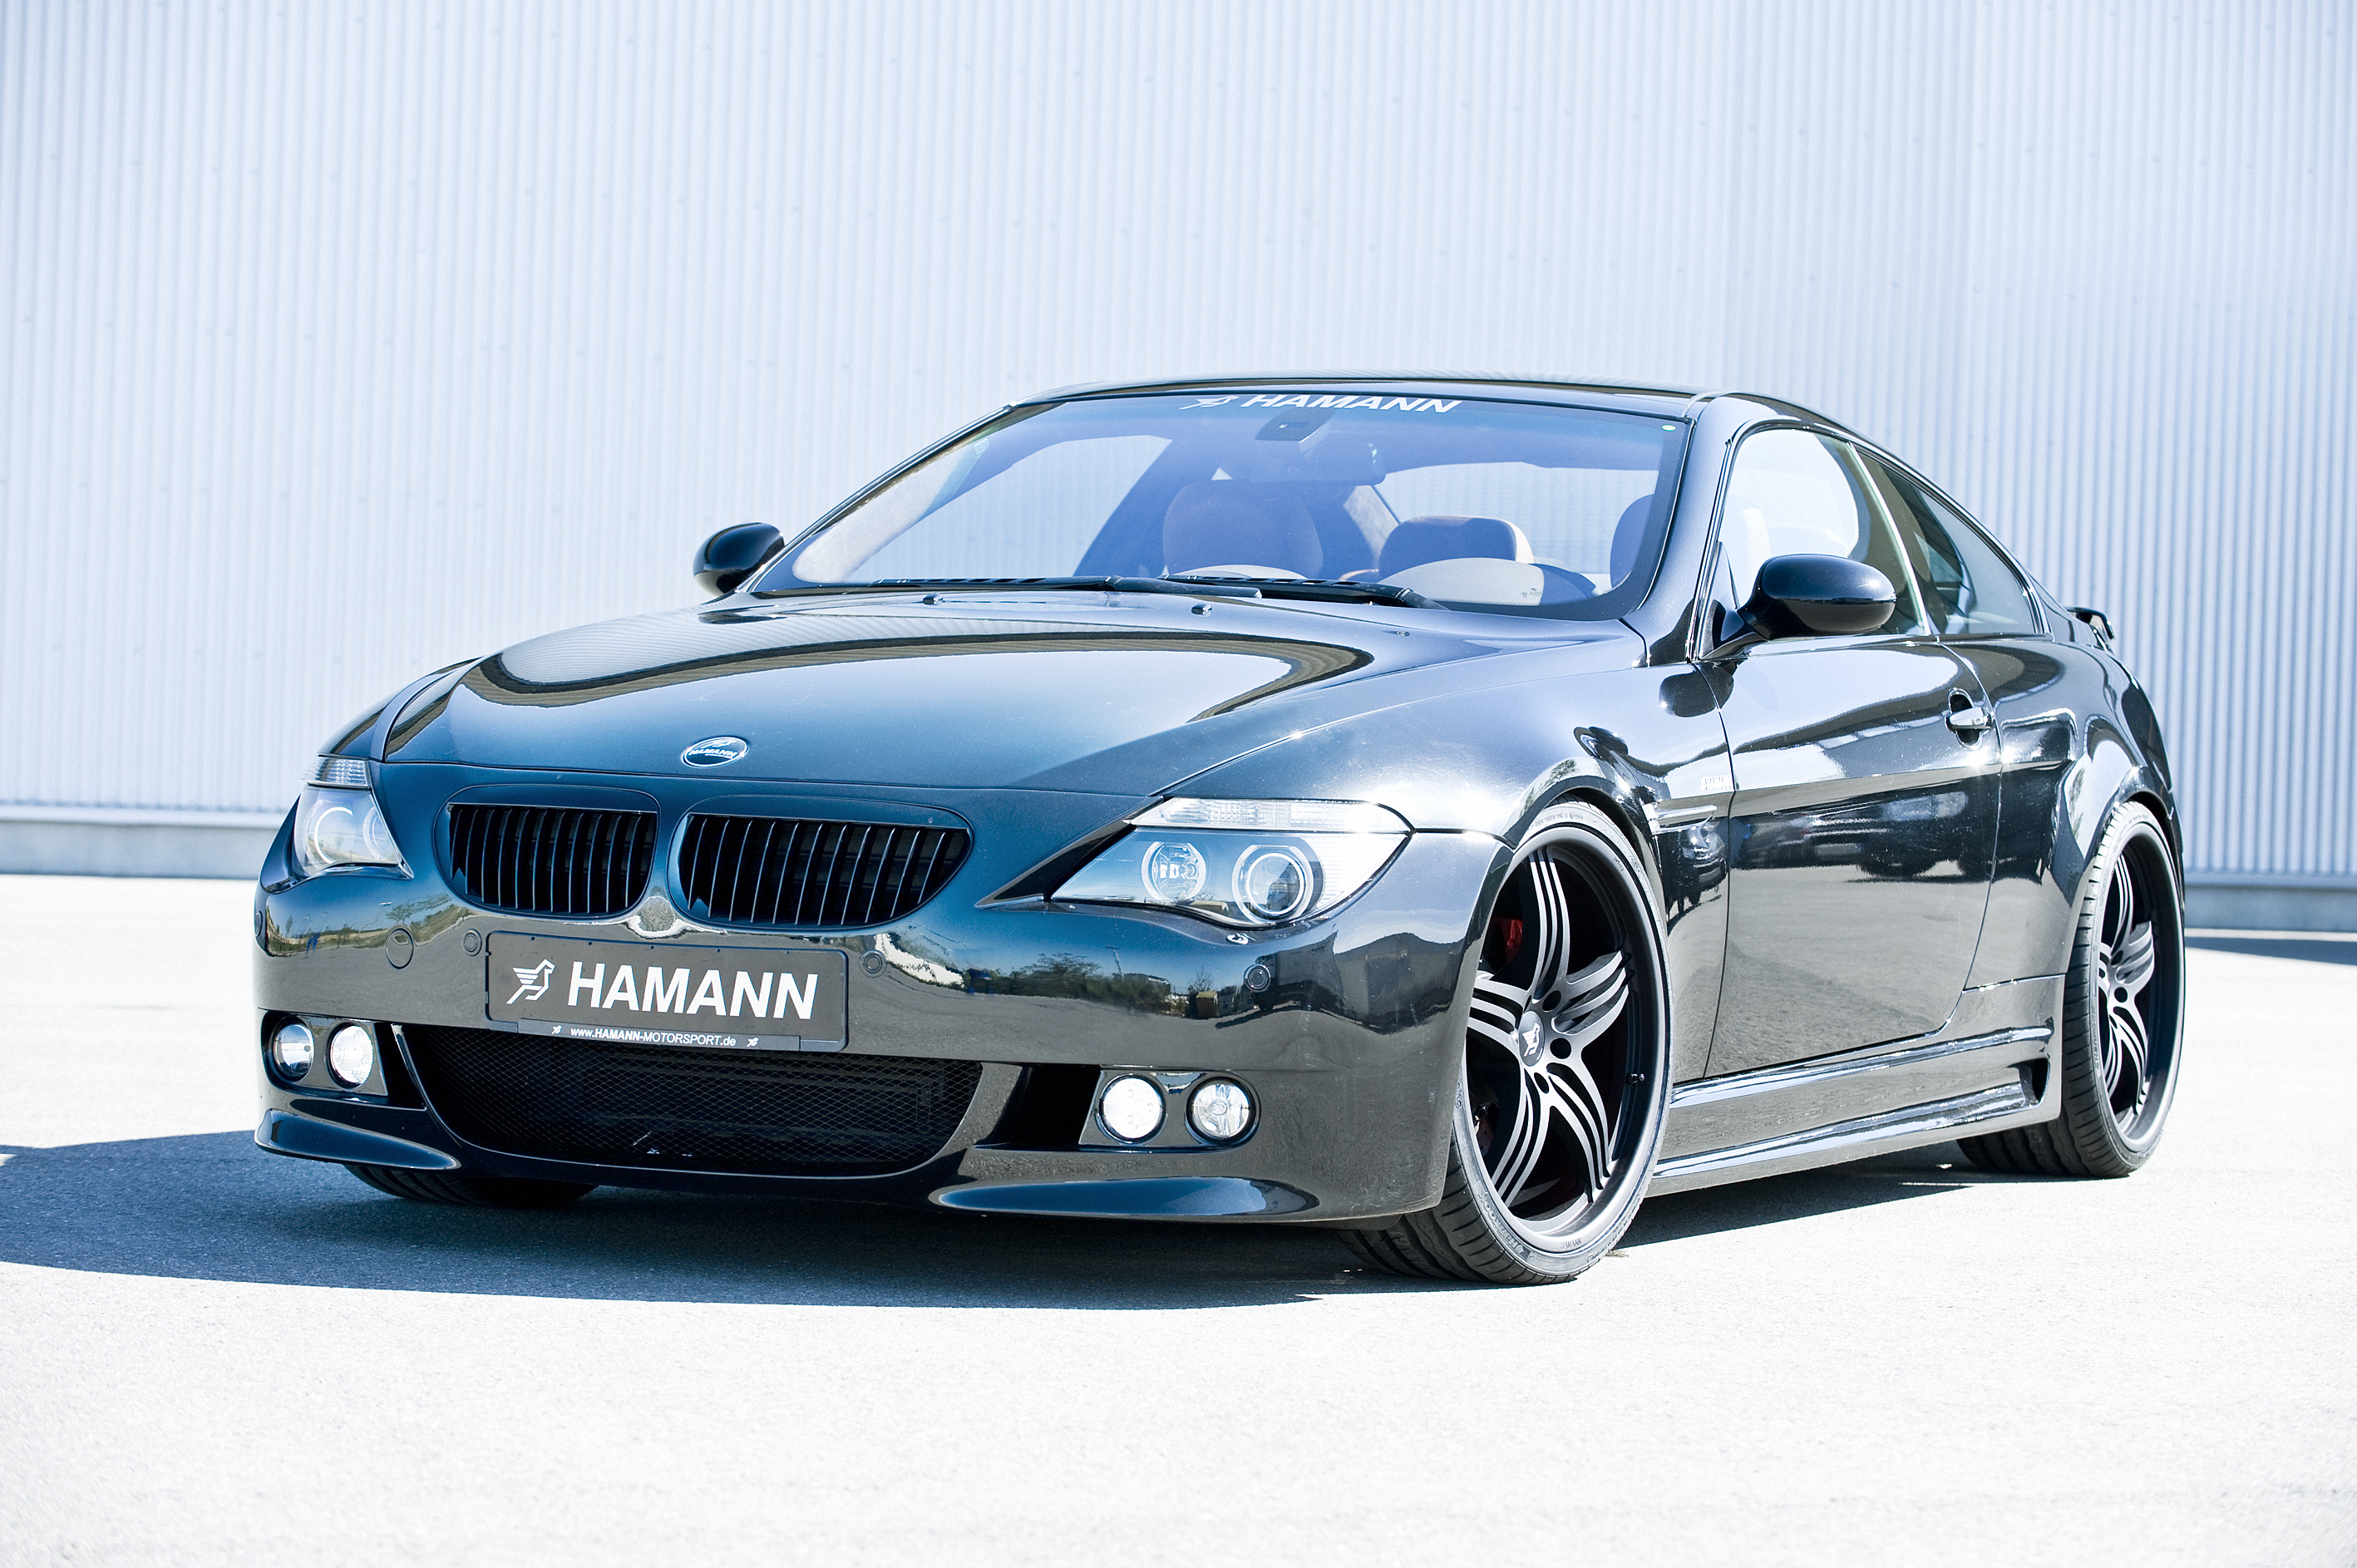 Hamann Bmw 6 Series - Picture 5026